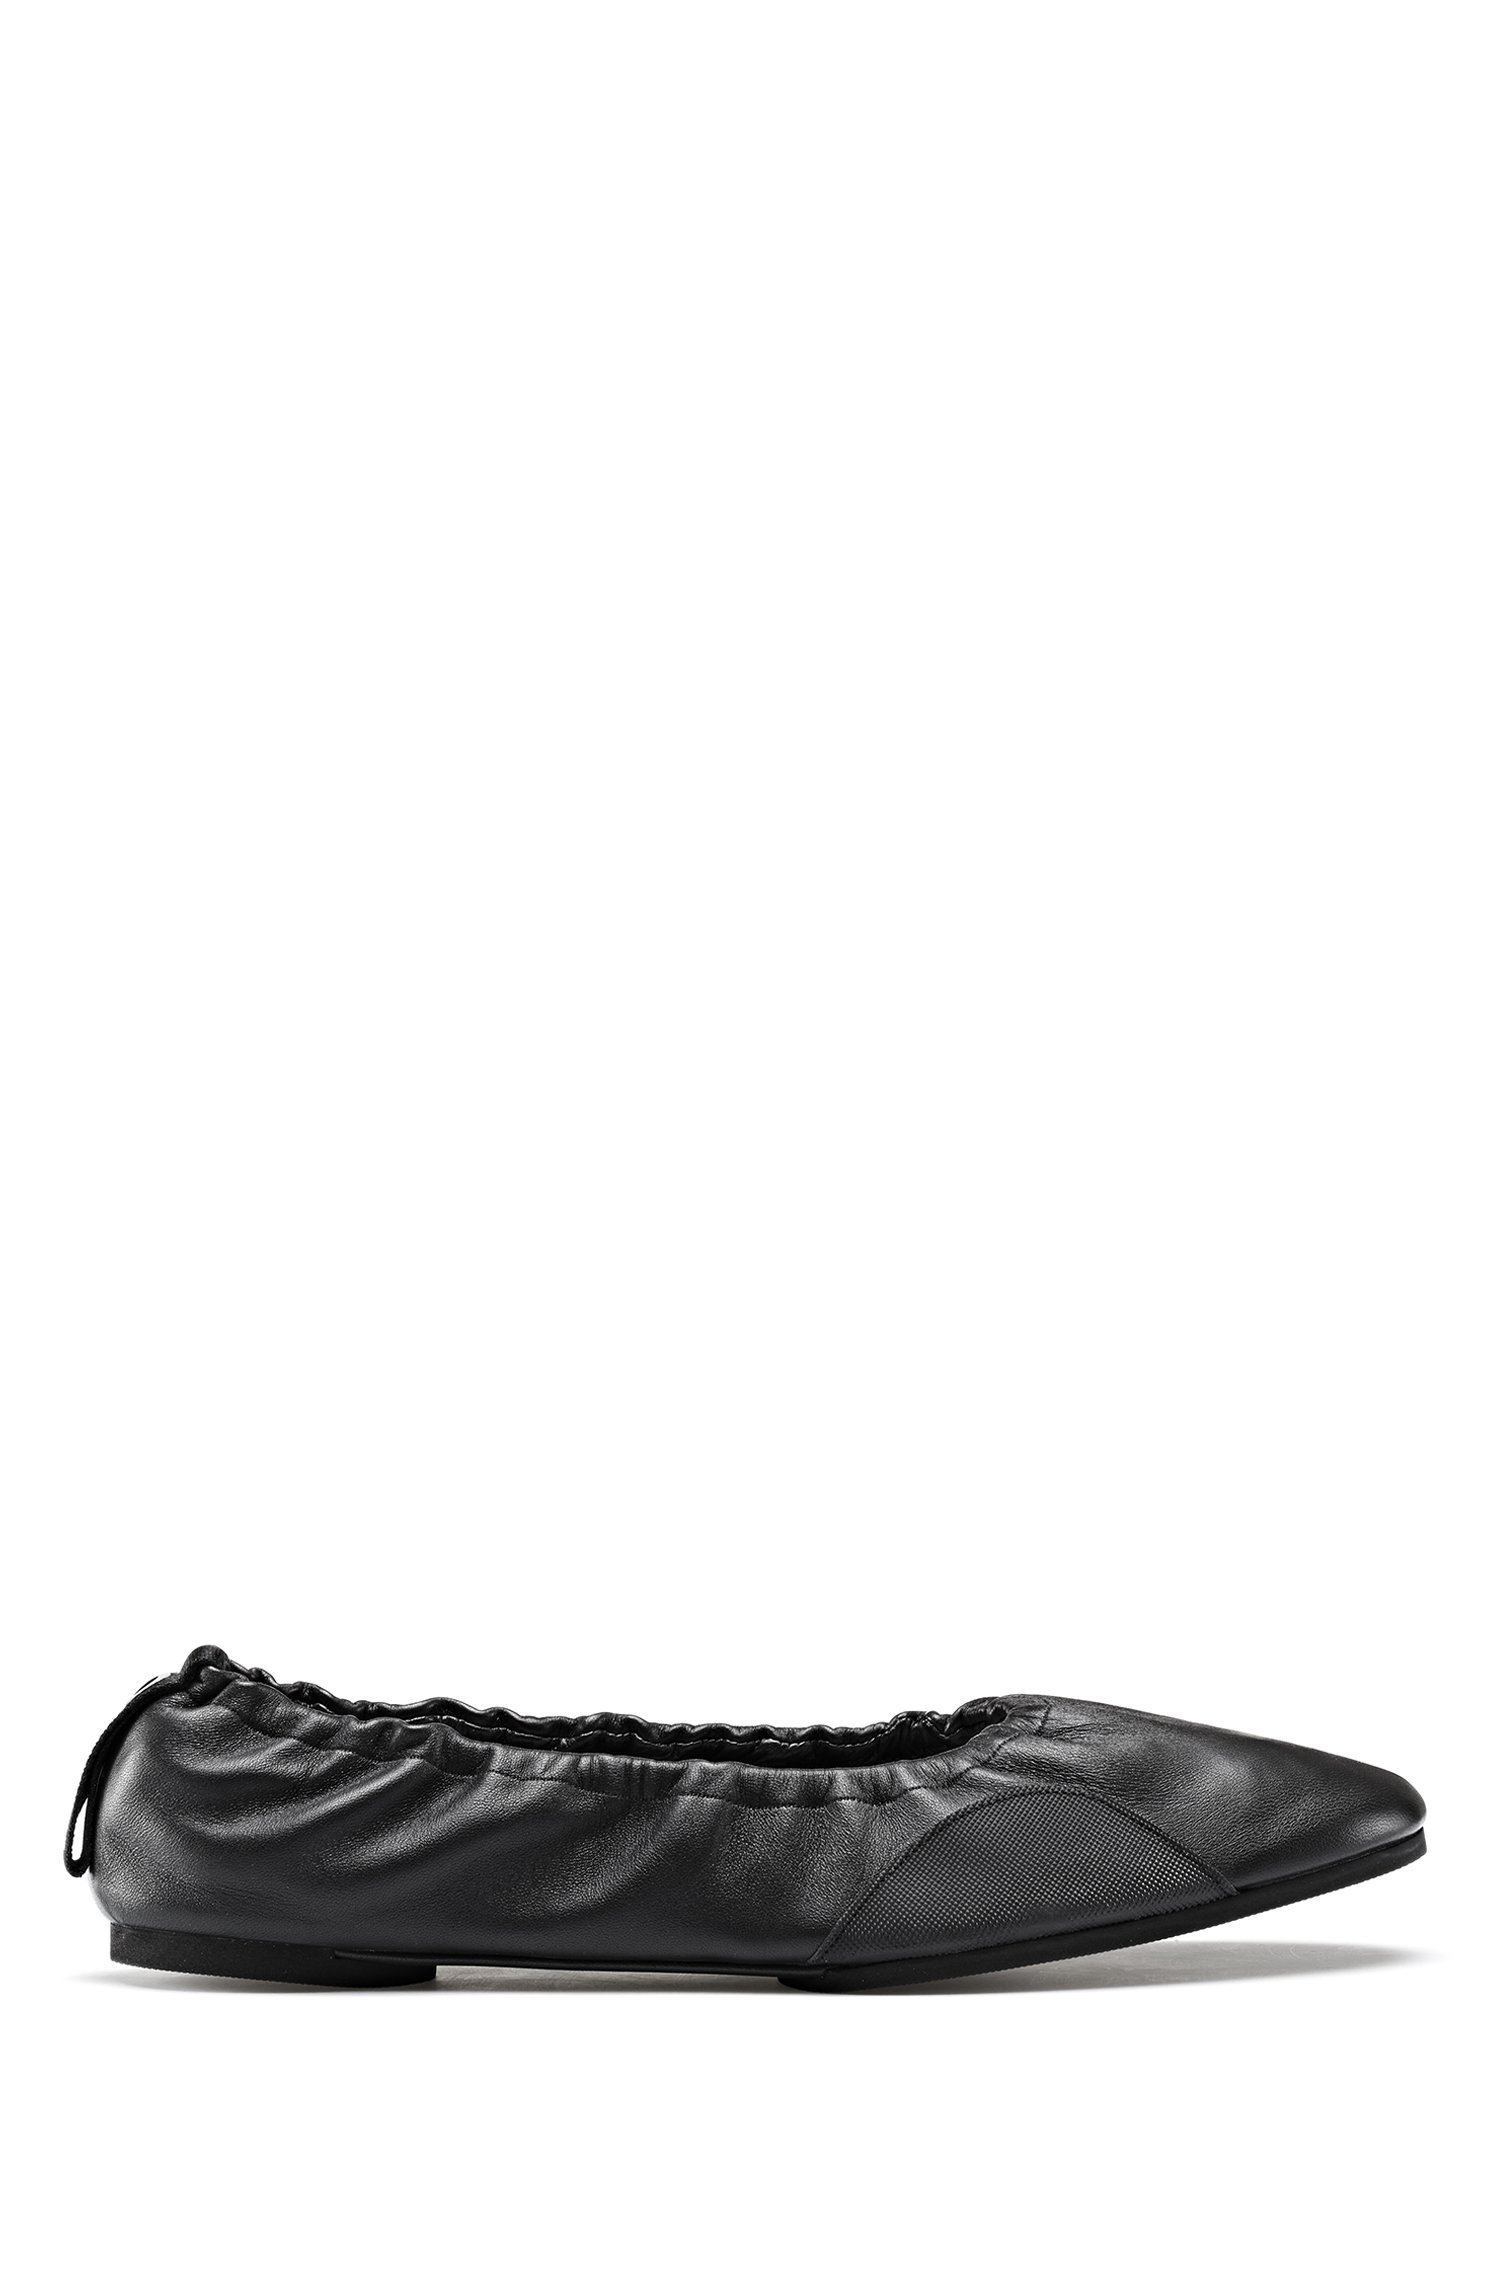 Ballerina pumps in nappa leather with flexible sole, Black